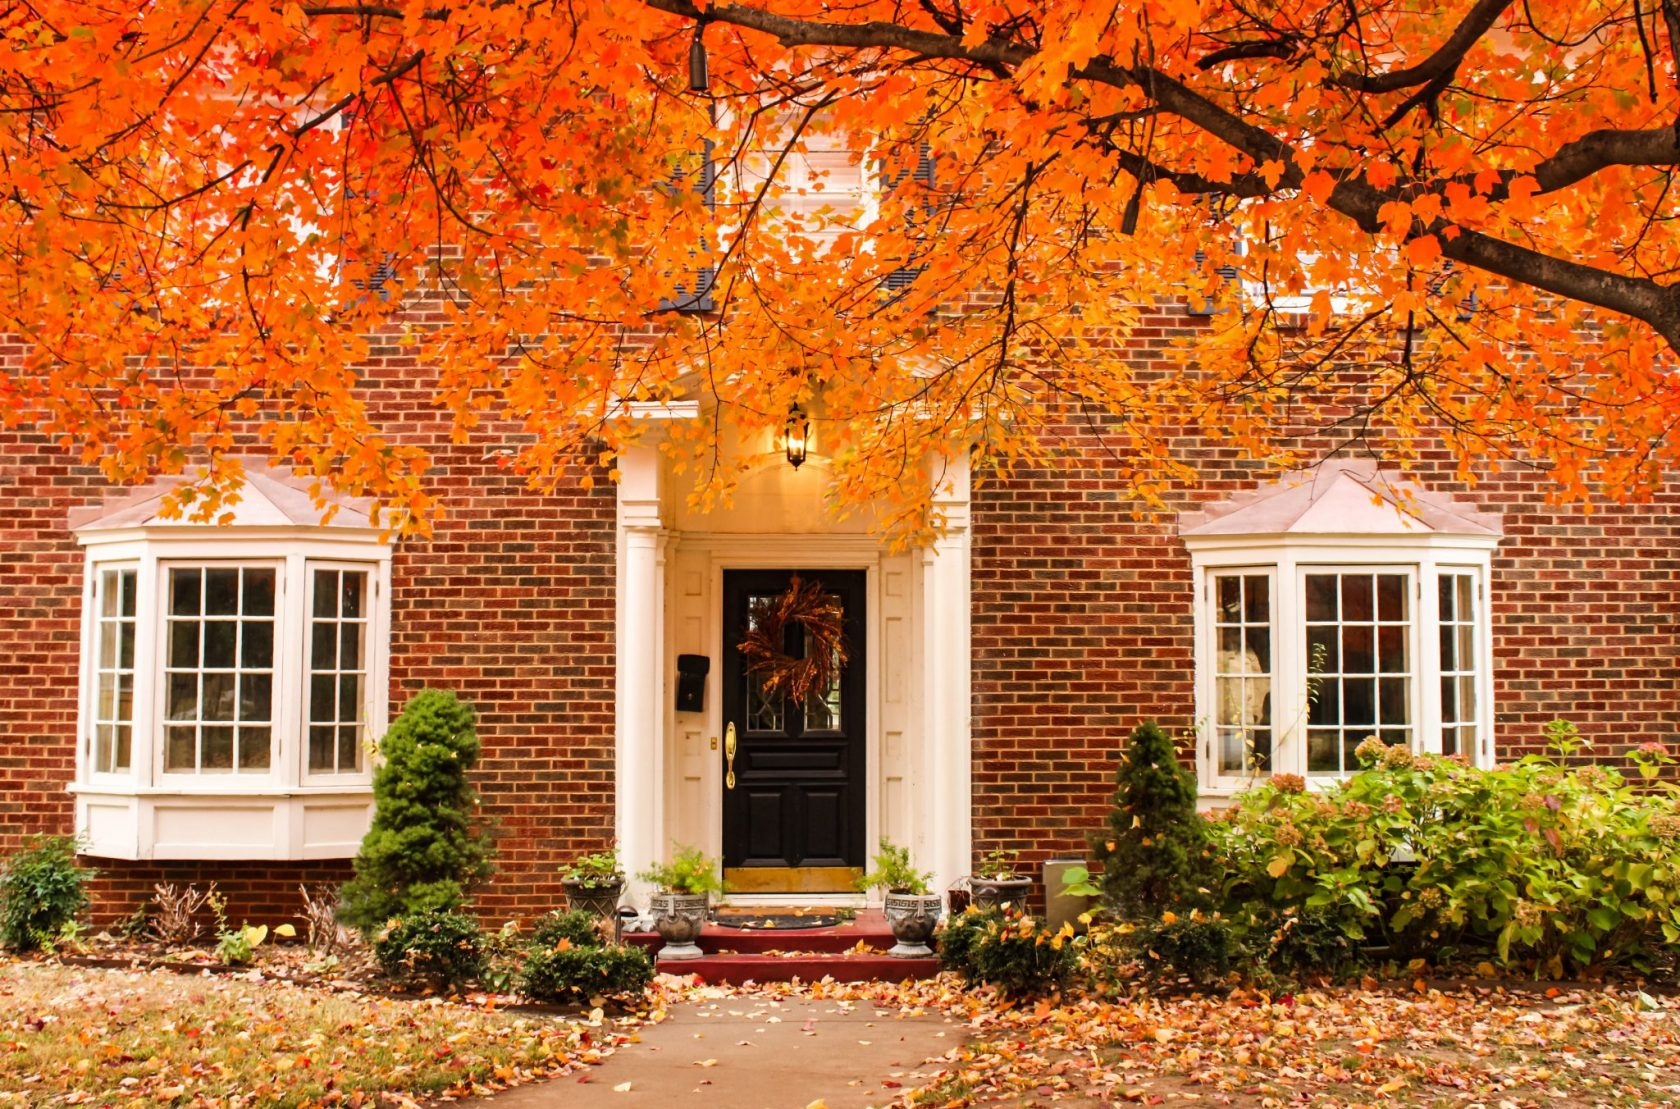 house-hunting-tips-to-help-you-find-the-right-home-in-burlington-team-logue-real-estate-autumn-home